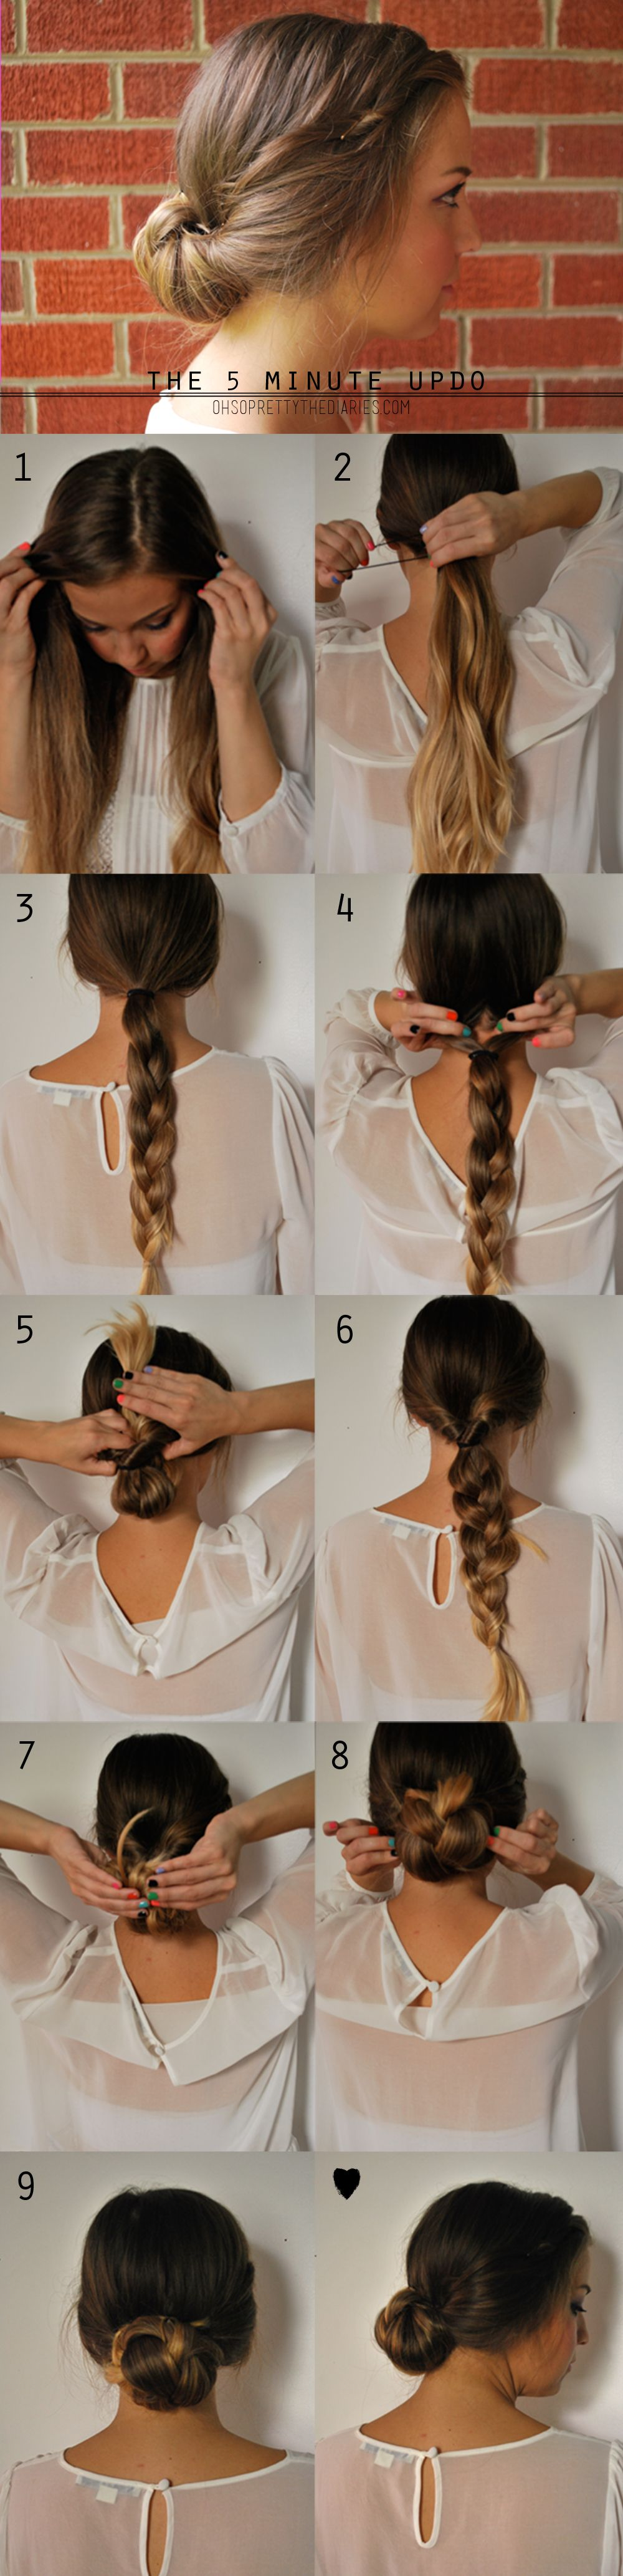 The minute updo braided gibson tuck updo hair ties and bobby